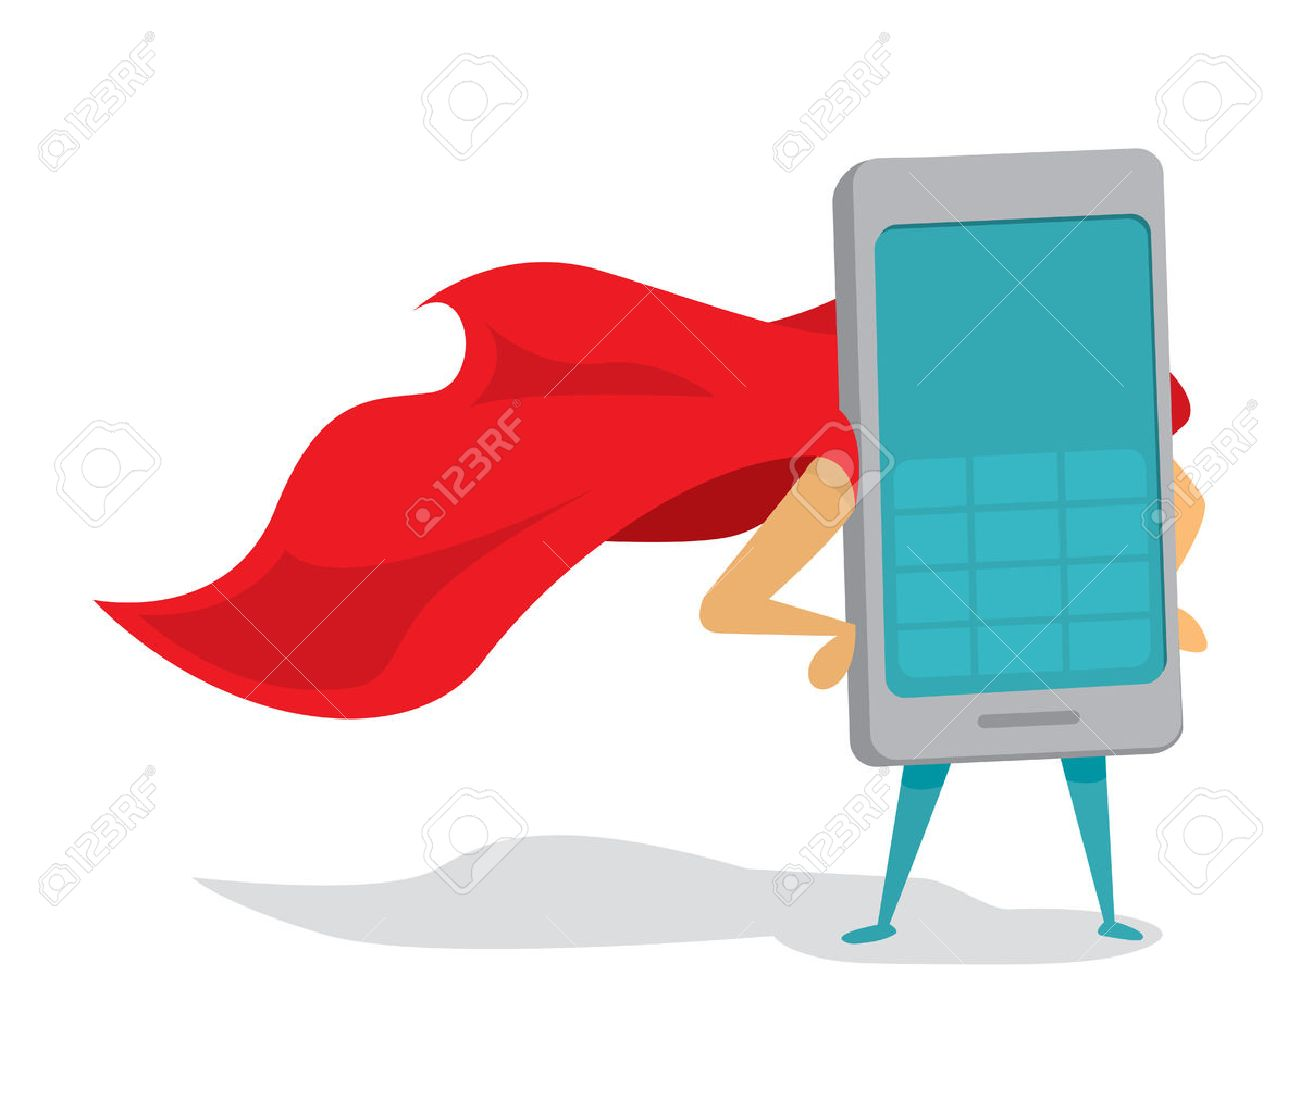 Cartoon illustration of mobile phone or super cellphone hero with cape - 51818575